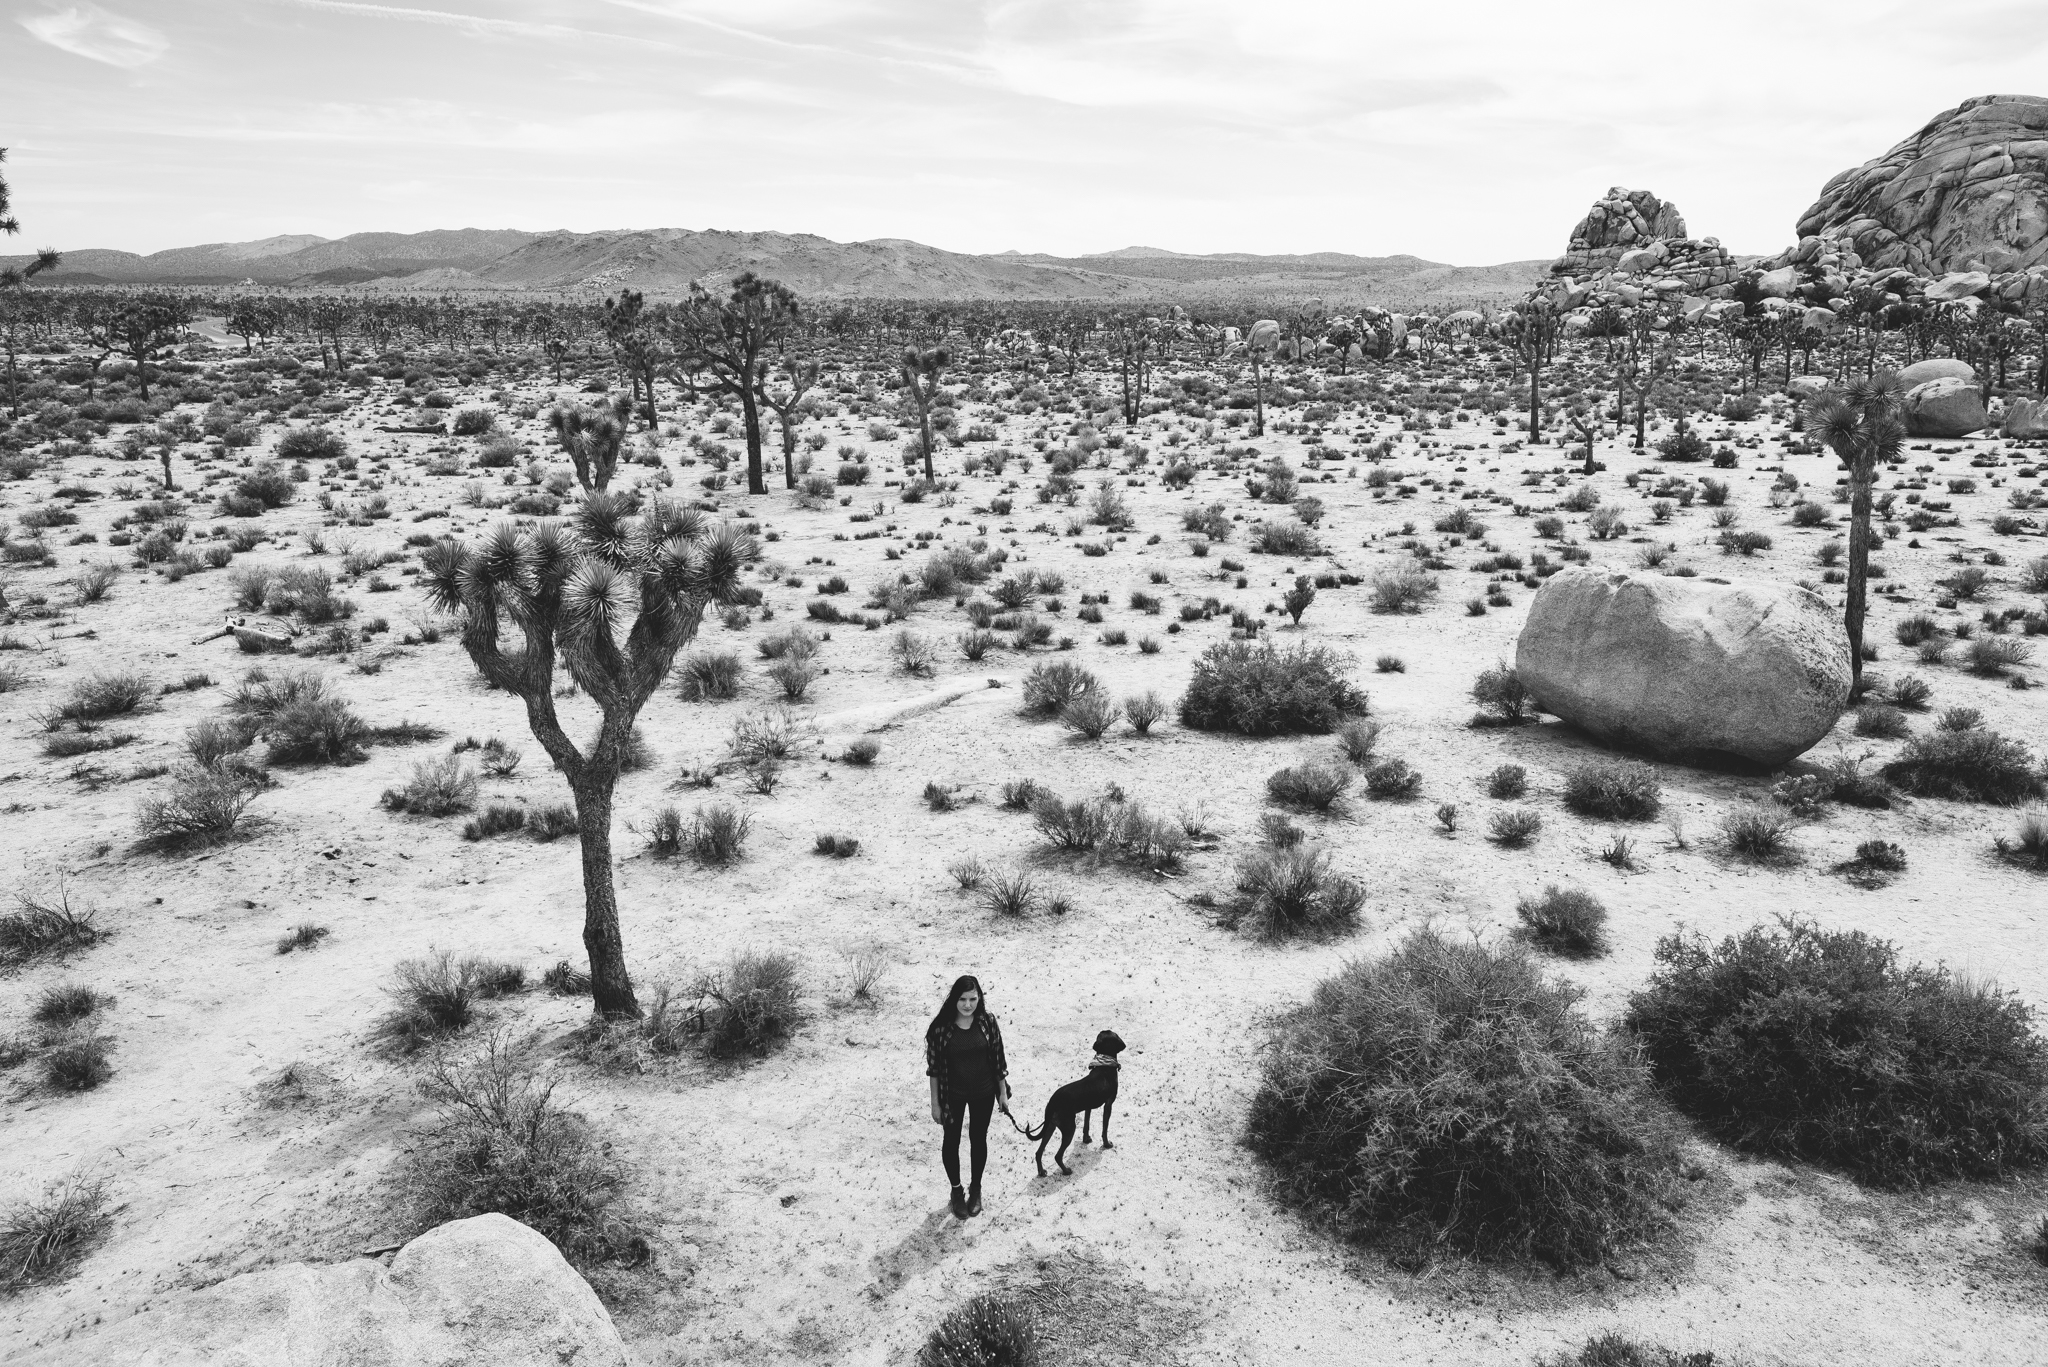 ©The Ryans Photography - Los Angeles Travel - Joshua Tree National Park-026.jpg